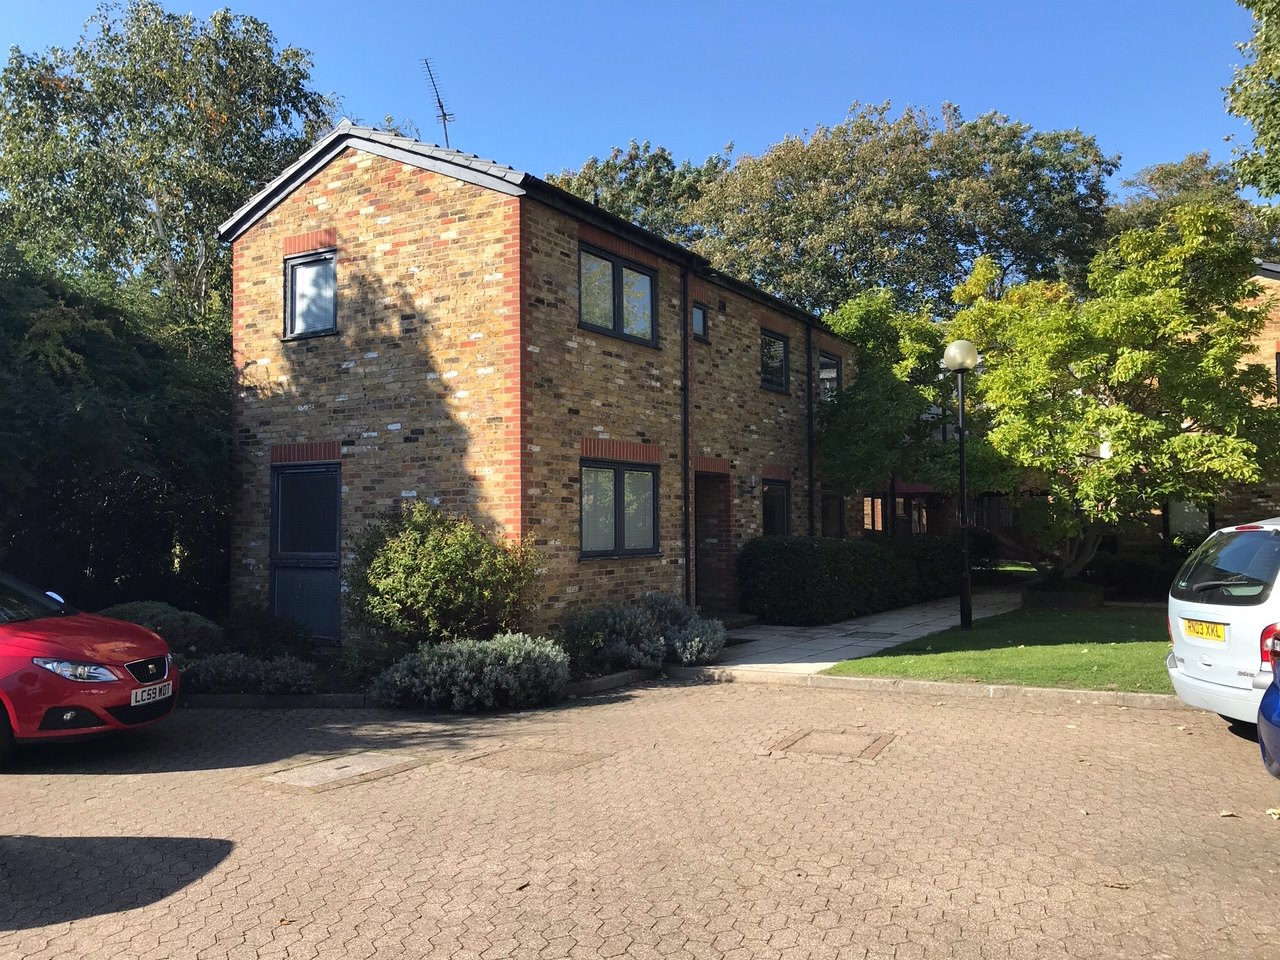 6 Bridle Close, Surbiton Road, Kingston upon Thames, KT1 2JW